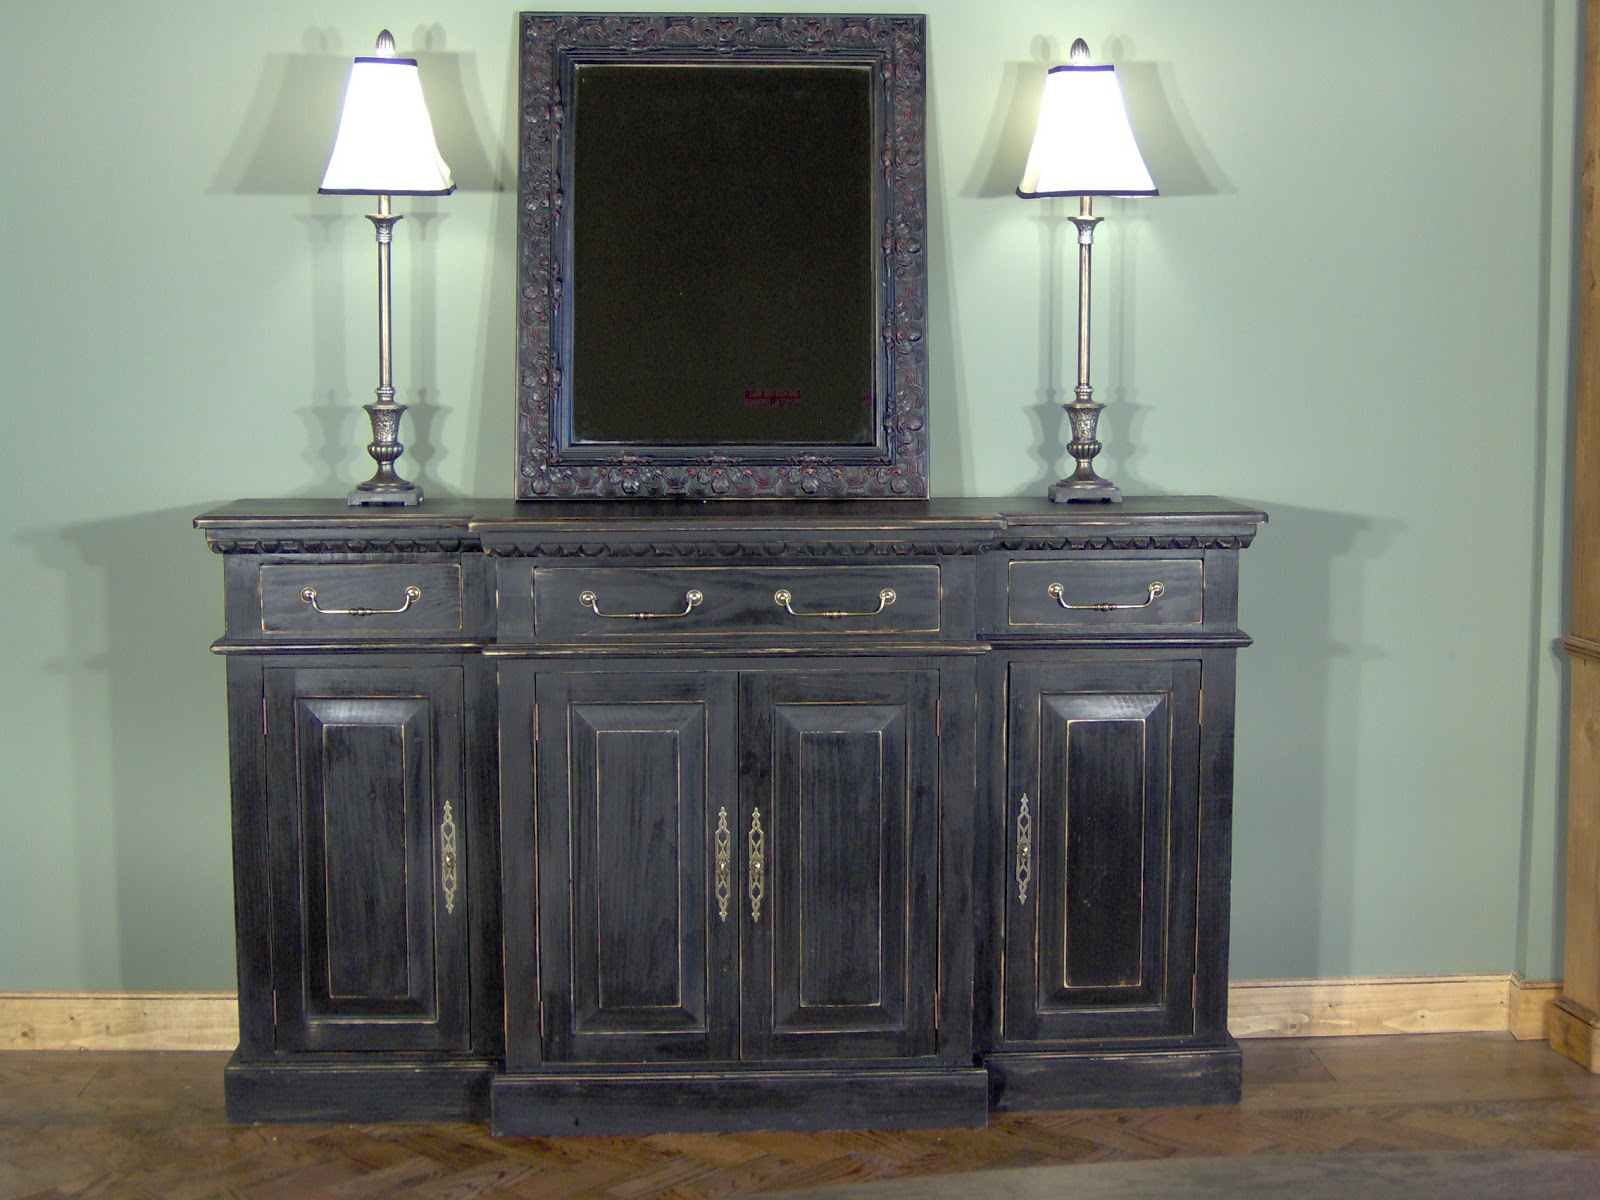 Painting furniture black distressed - Painting Furniture Black Distressed 55